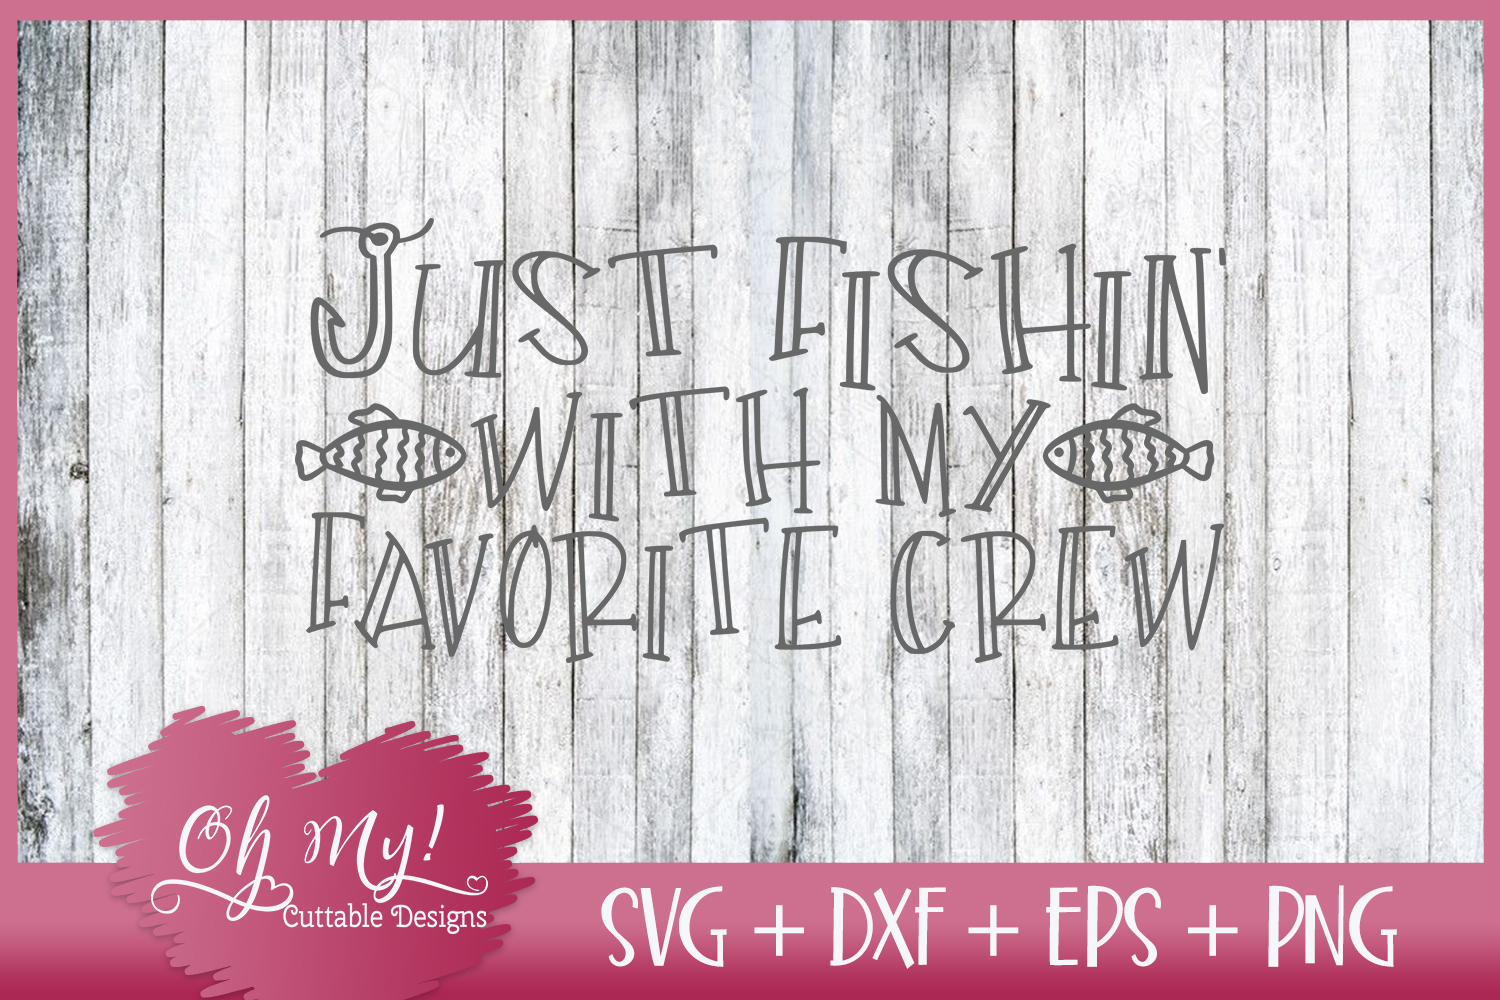 Just Fishin With My Favorite Crew - SVG DXF EPS PNG Cutting example image 3